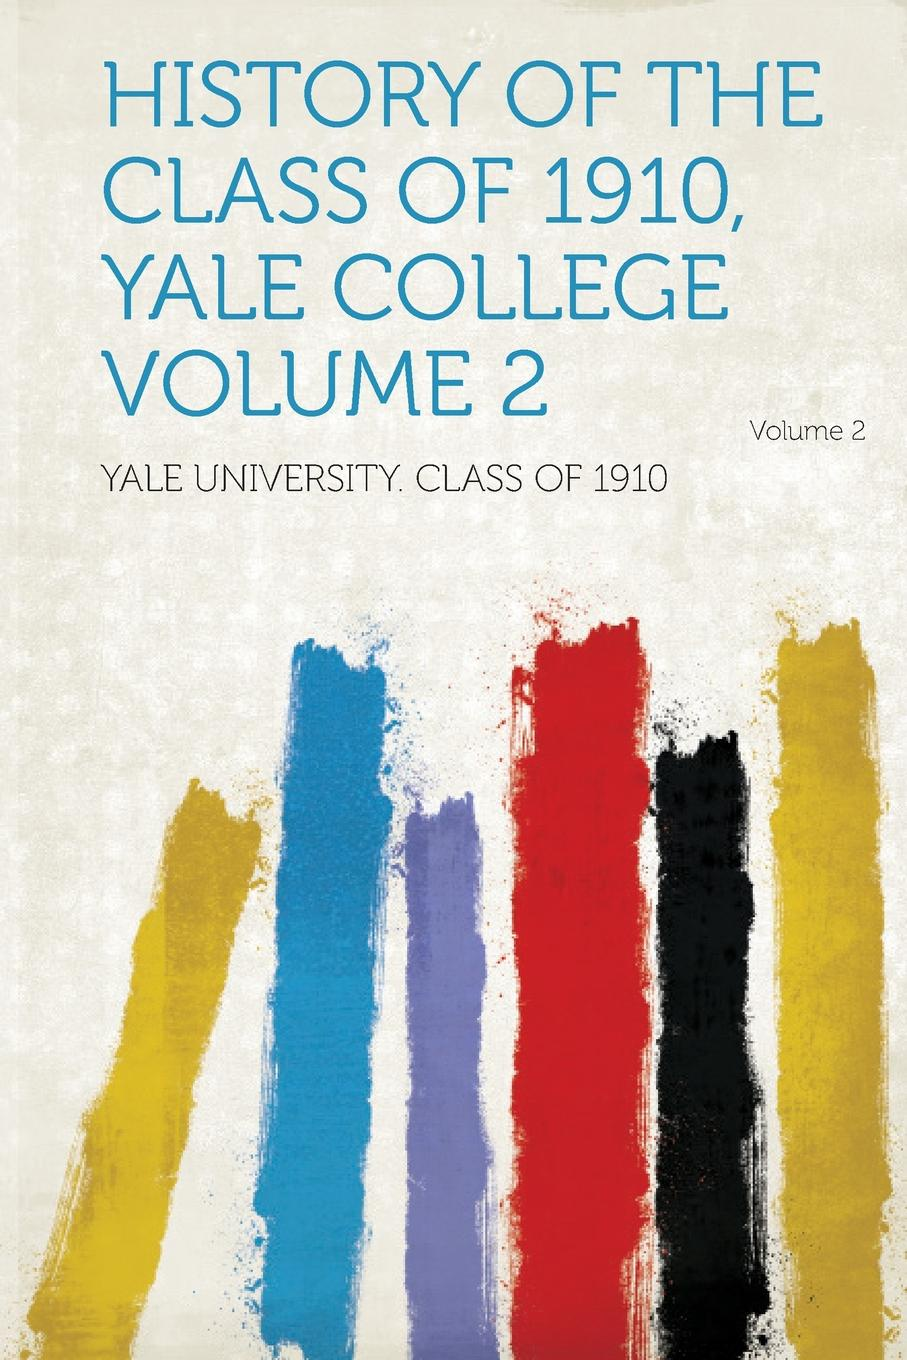 Yale University Class of 1910 History the 1910, College Volume 2